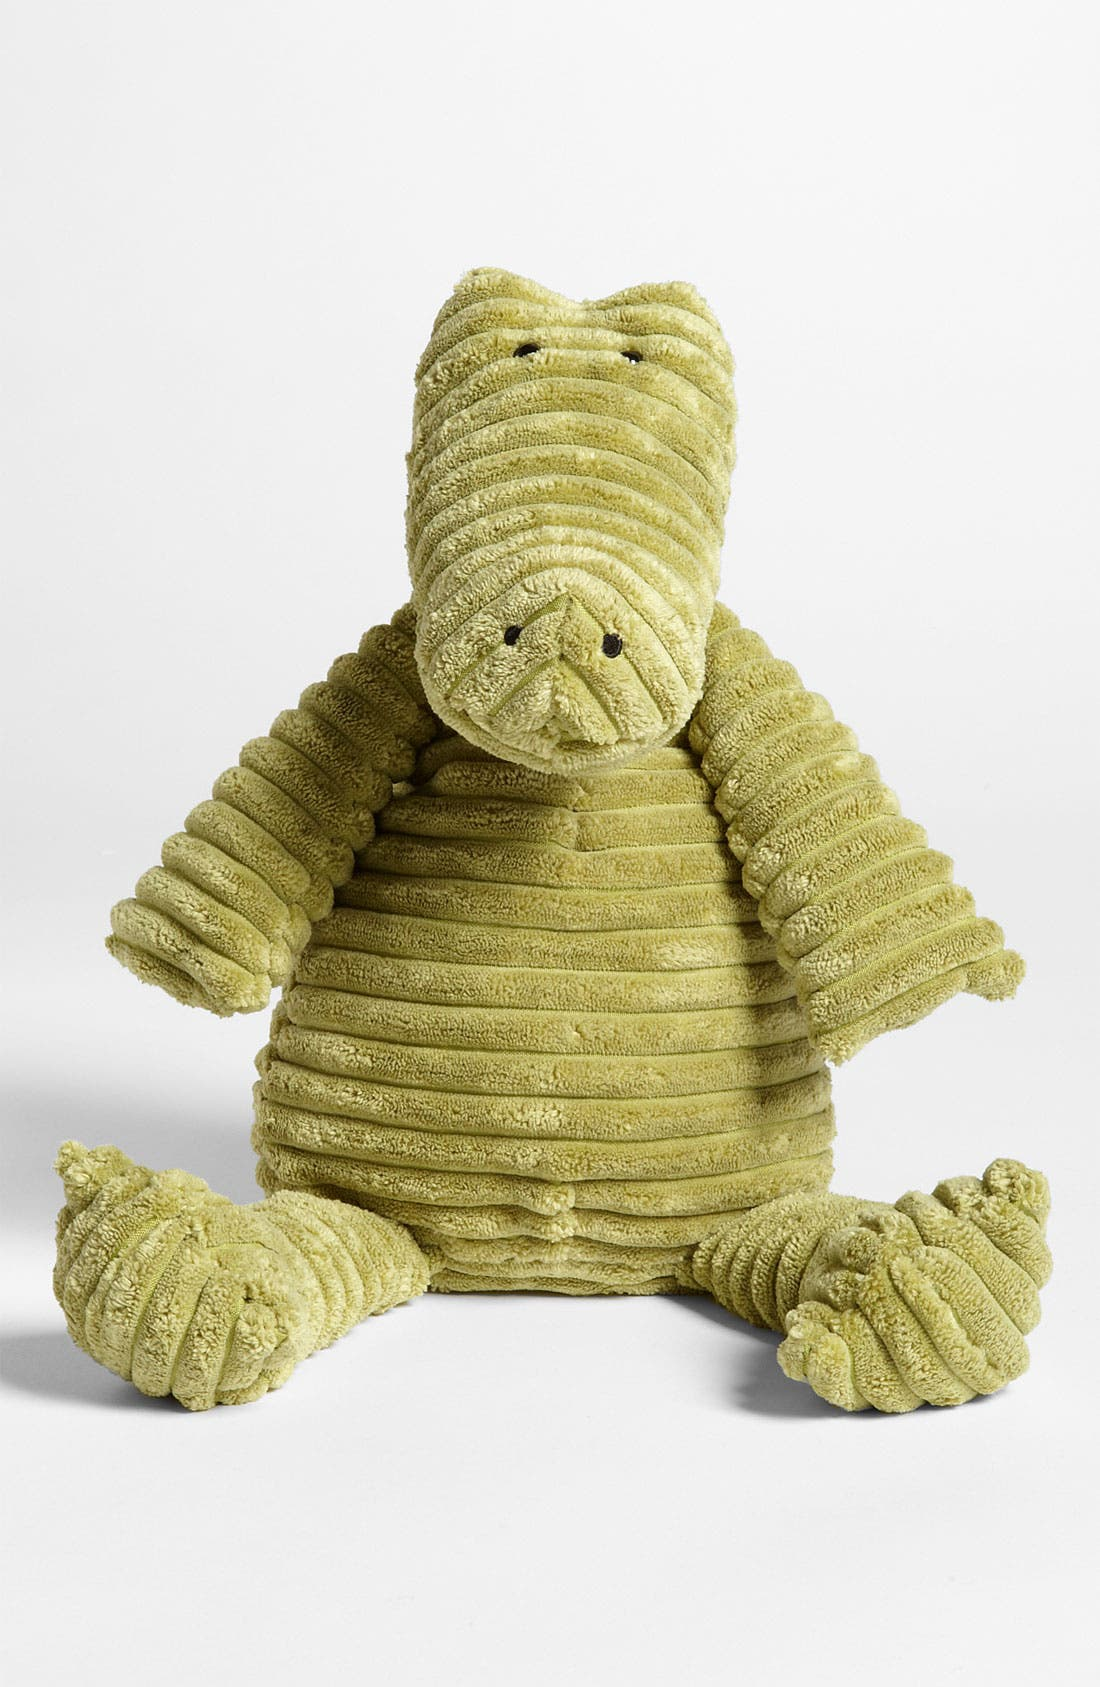 Main Image - Jellycat 'Cordy Roy Alligator' Stuffed Animal